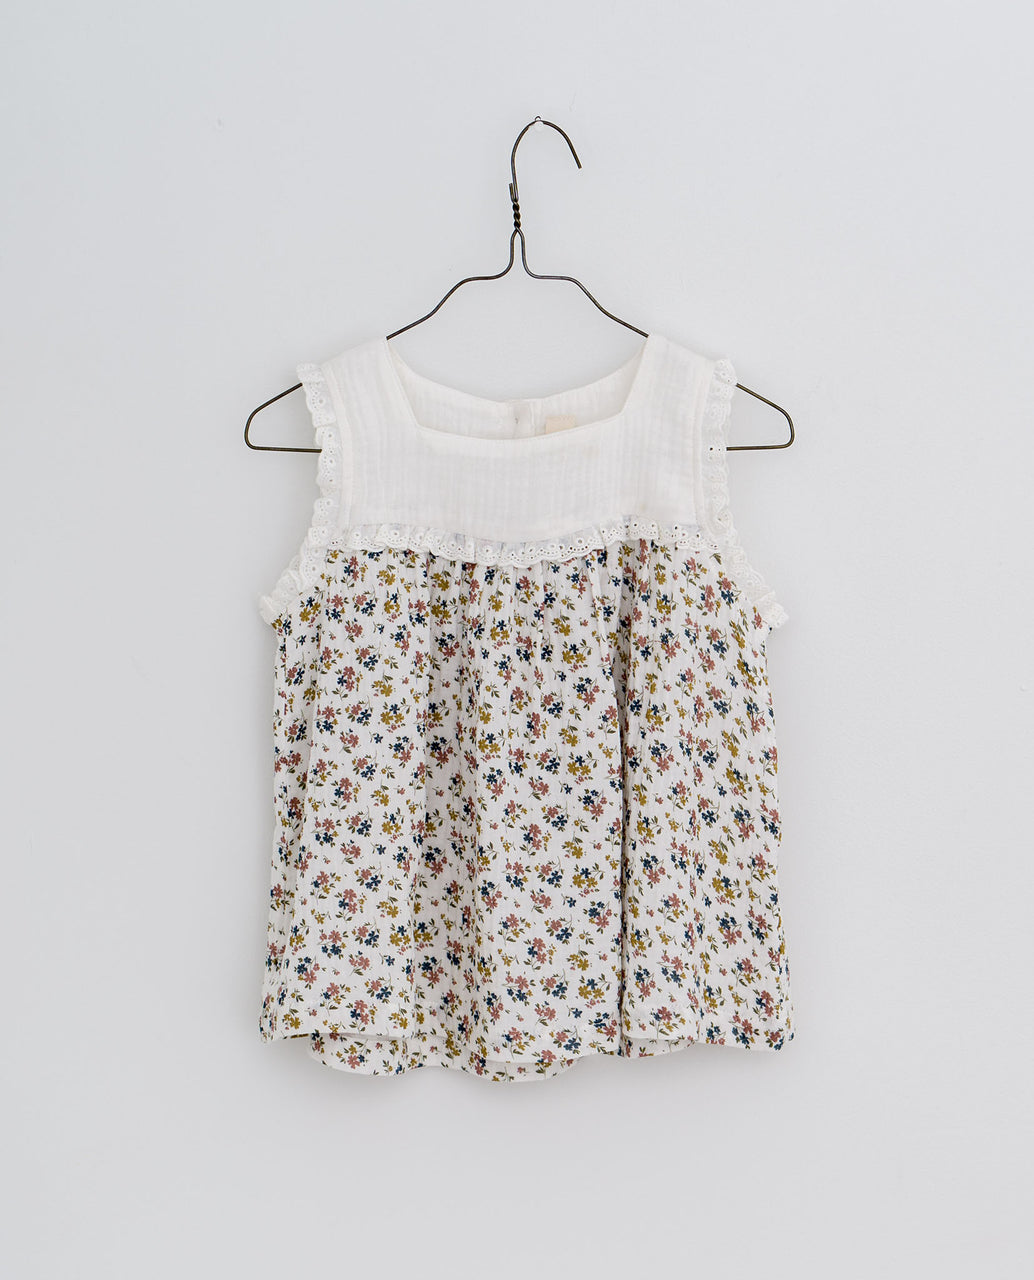 Frida sun top - Aster floral in muslin